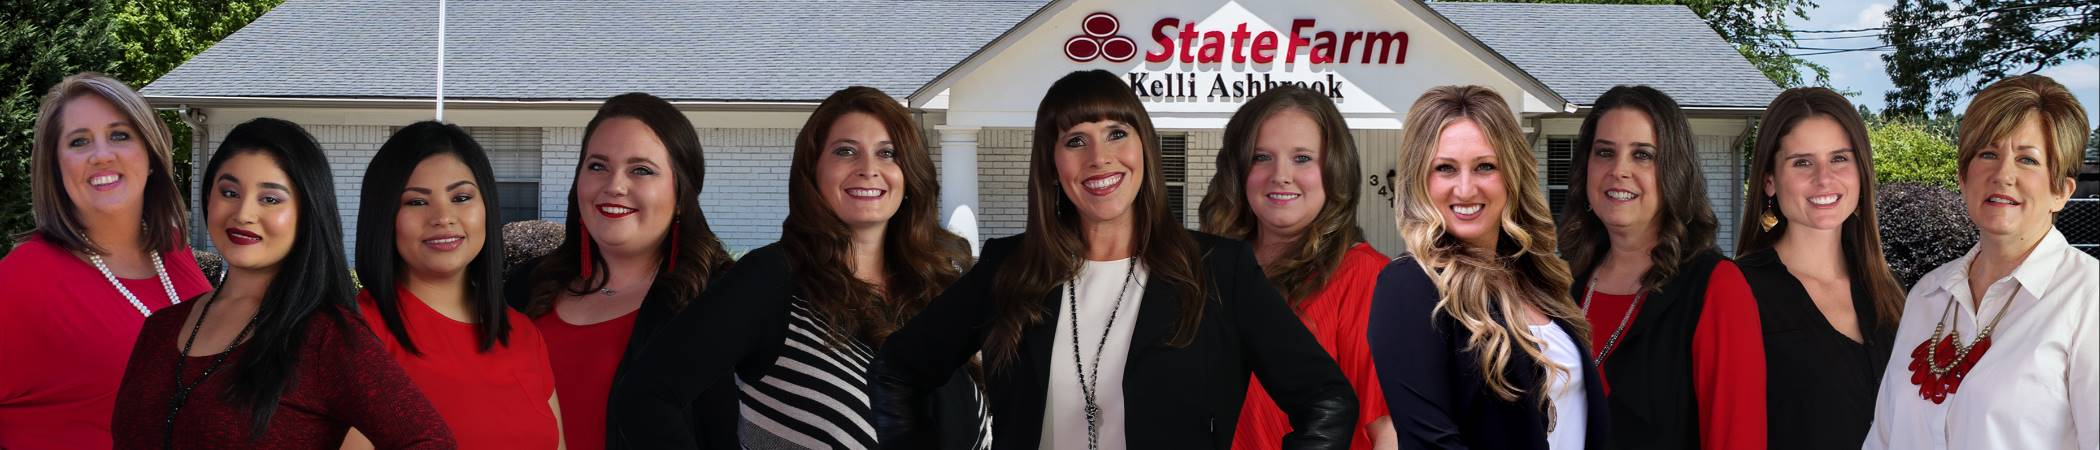 Kelli Ashbrook State Farm Insurance in Texarkana, TX | Home, Auto Insurance & more